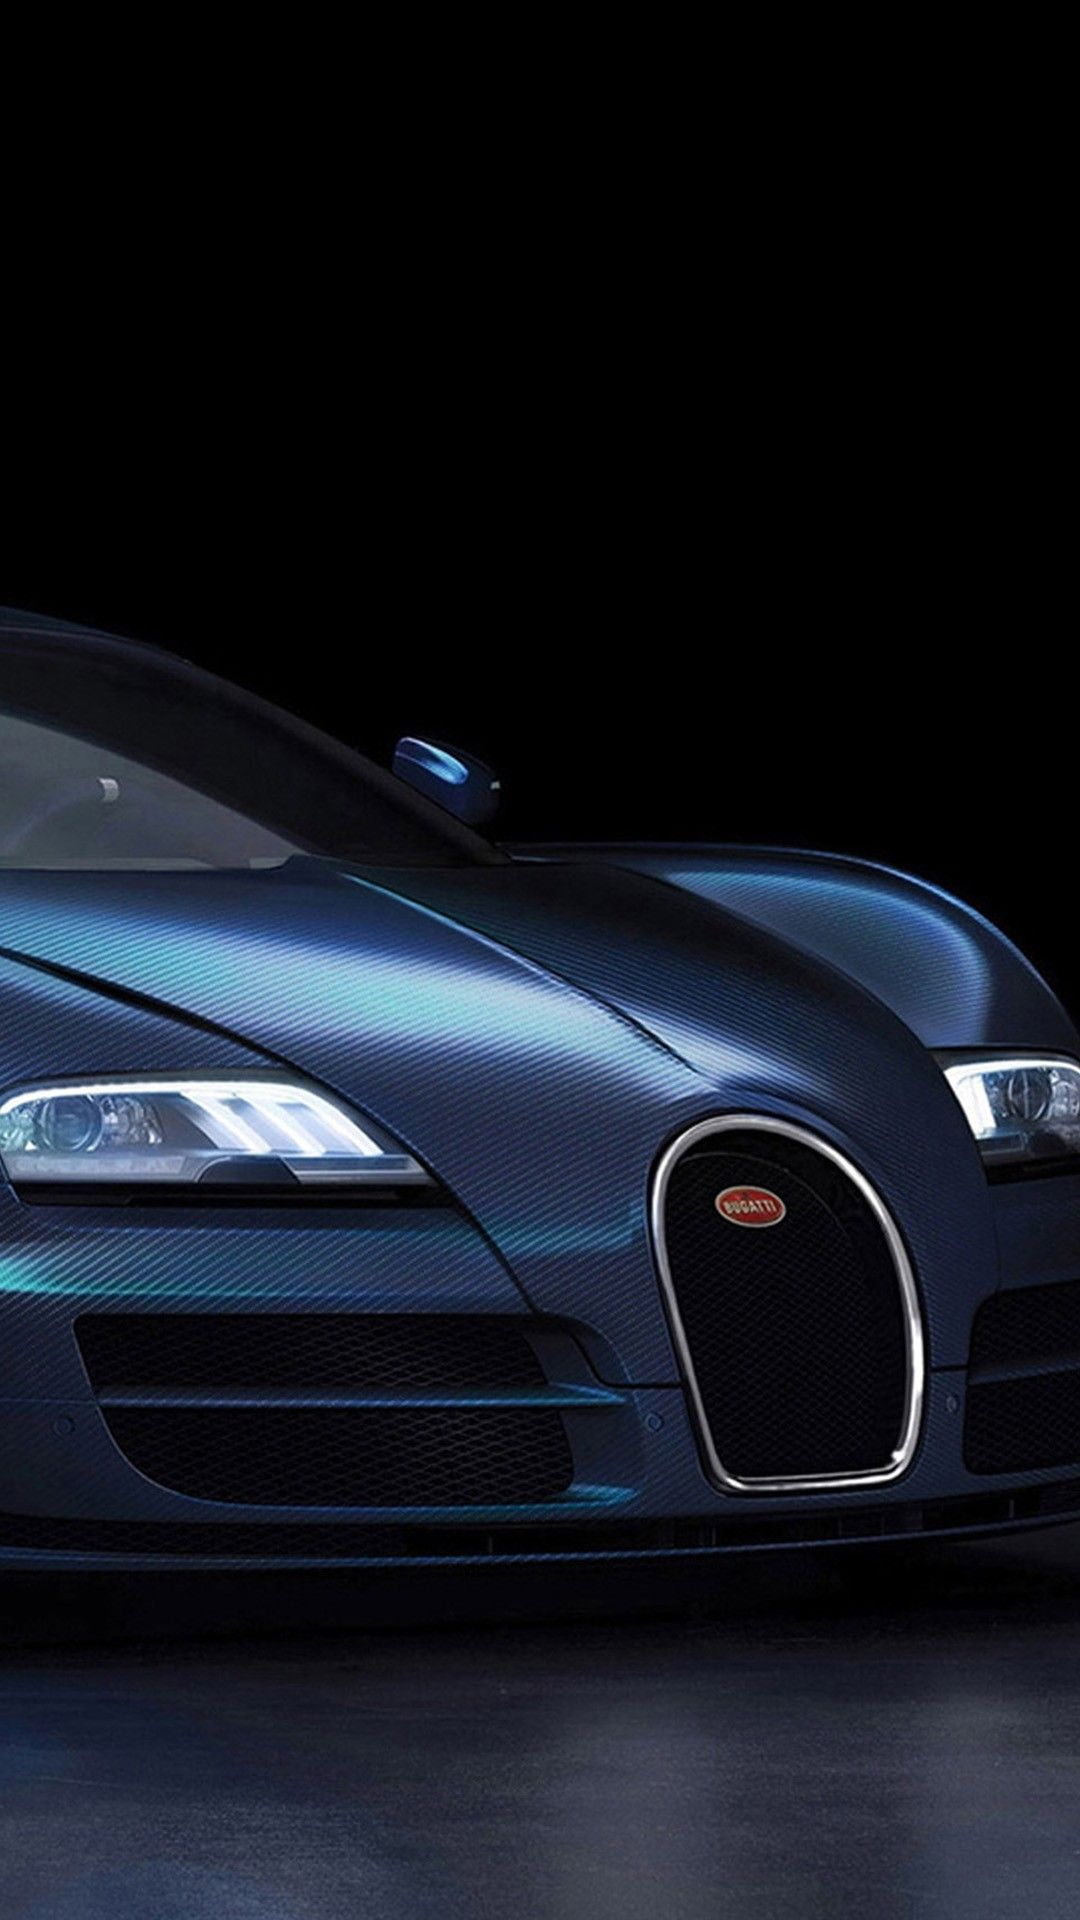 Car Wallpapers For Iphone 6 Plus 81 Check More At Https Phonewallp Com Car Wallpapers For Iphone 6 Plu Bugatti Wallpapers Bugatti Veyron Car Iphone Wallpaper